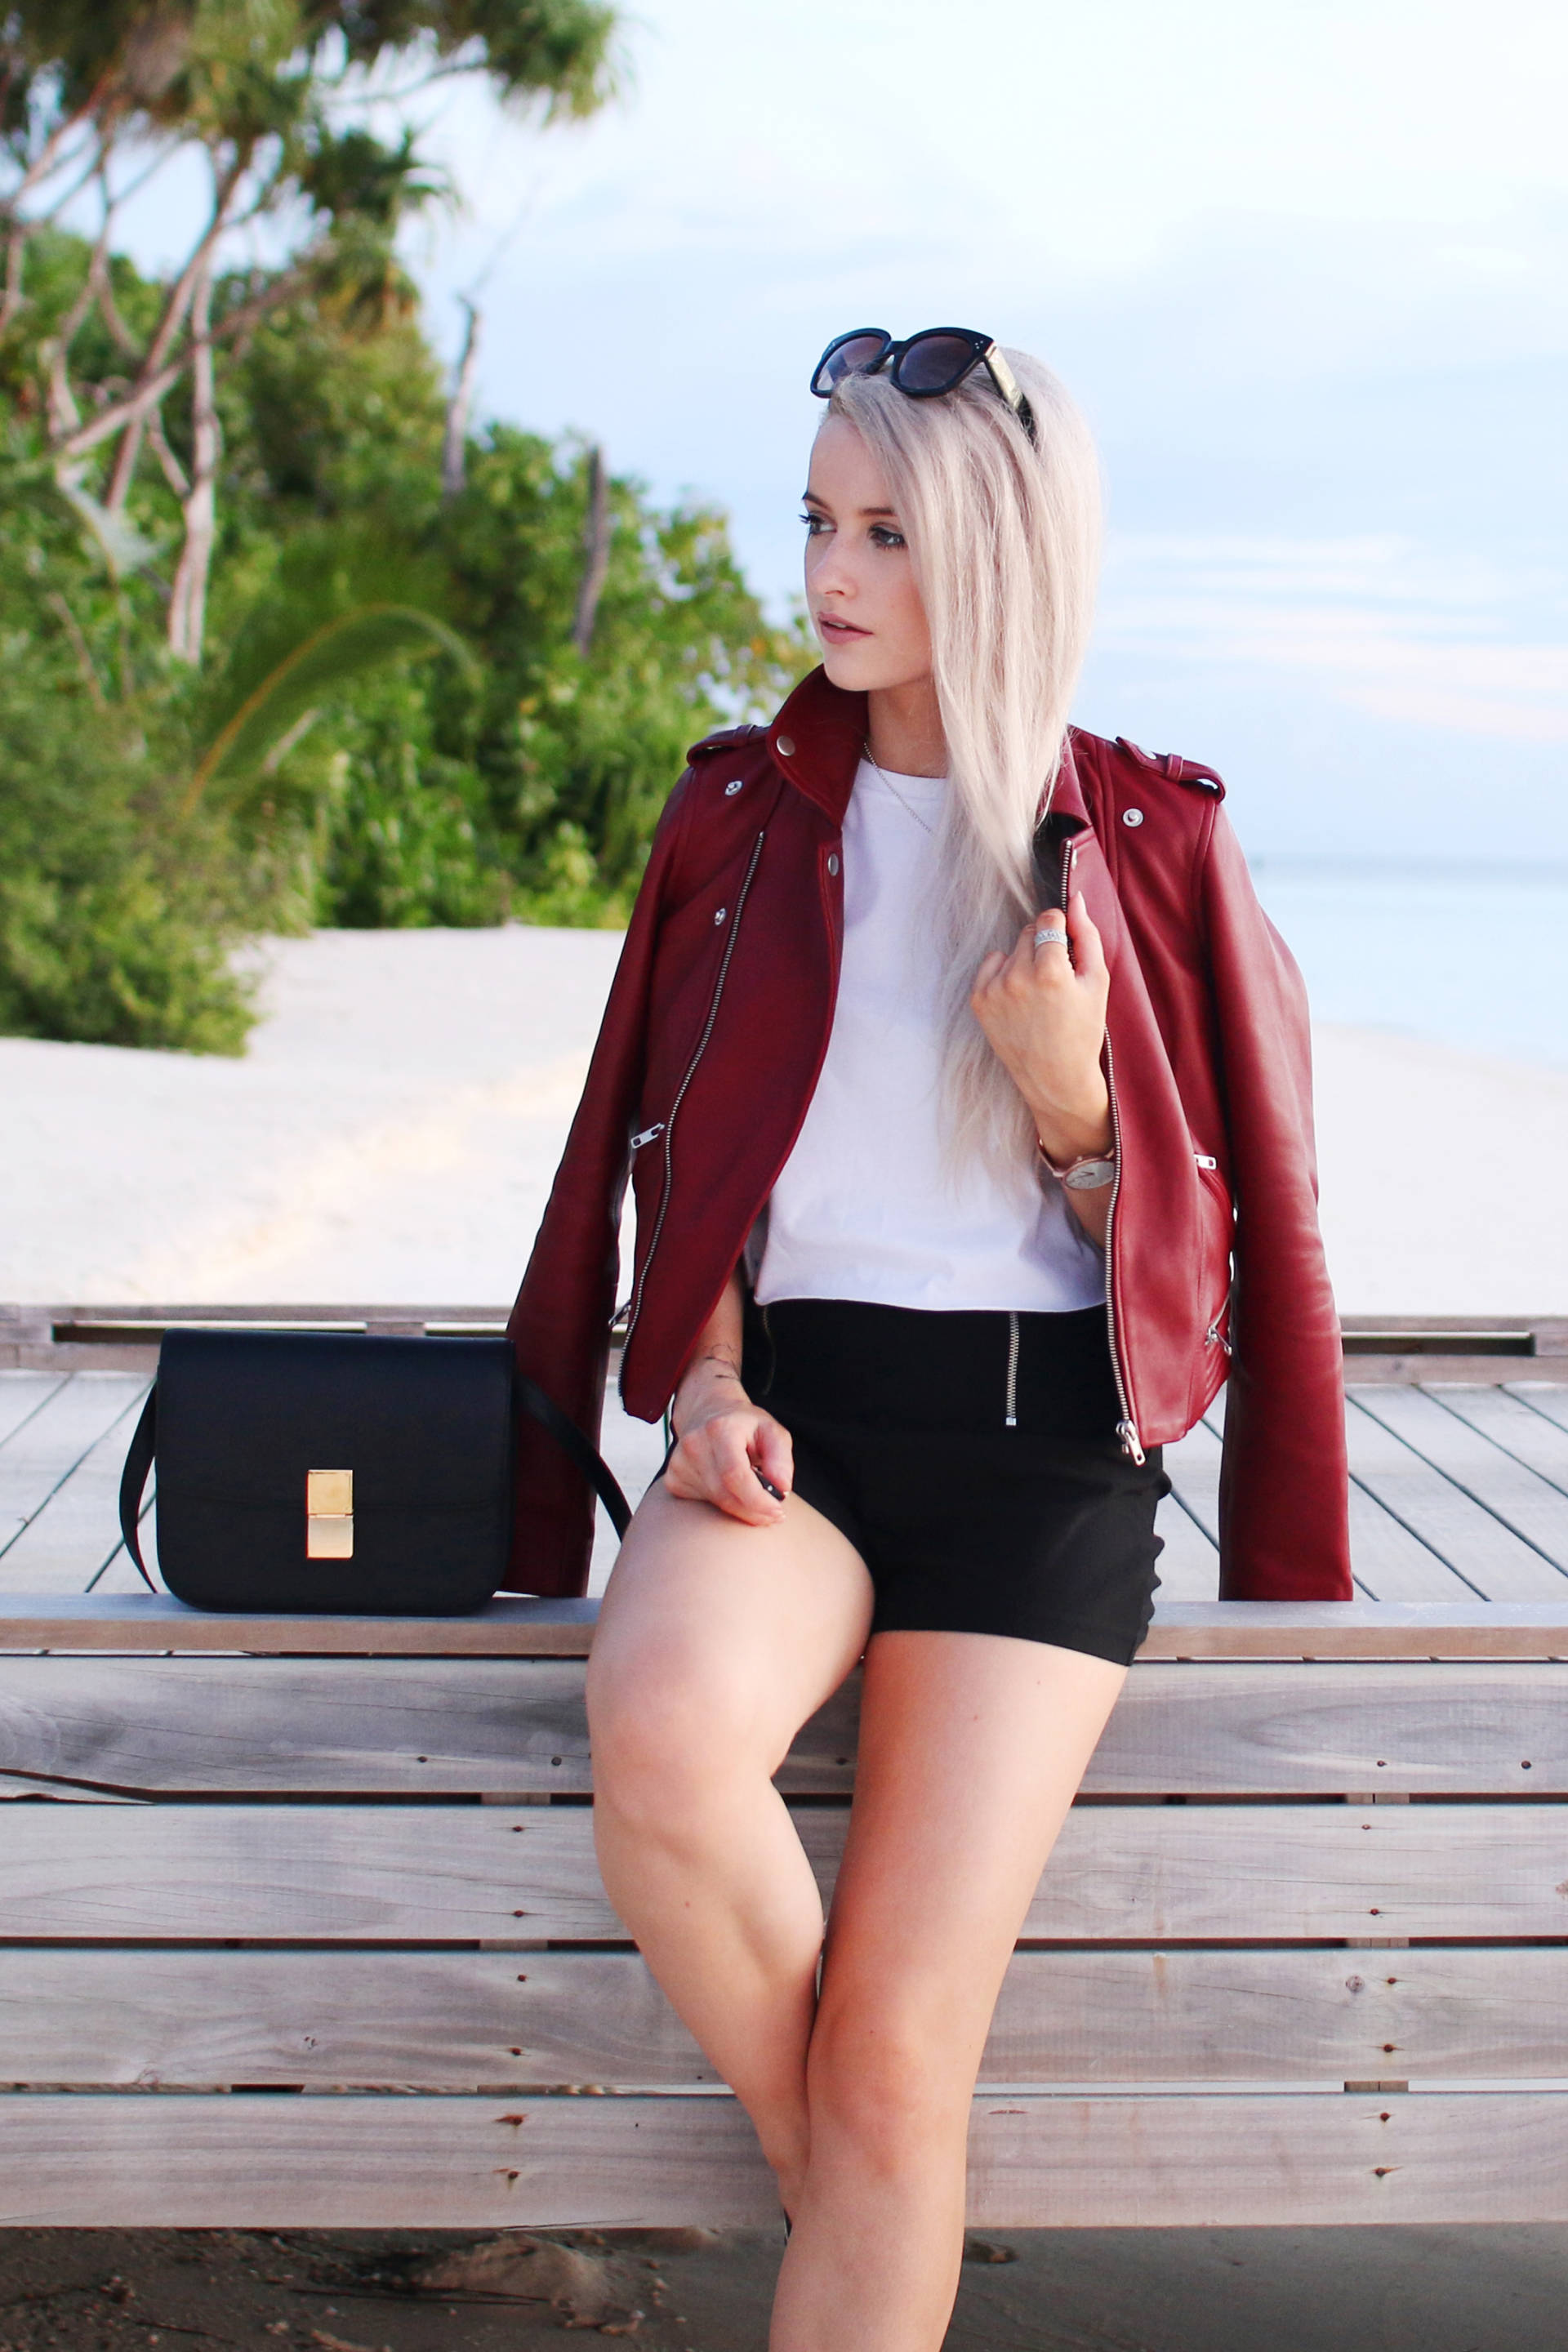 maje red leather jacket in the maldives